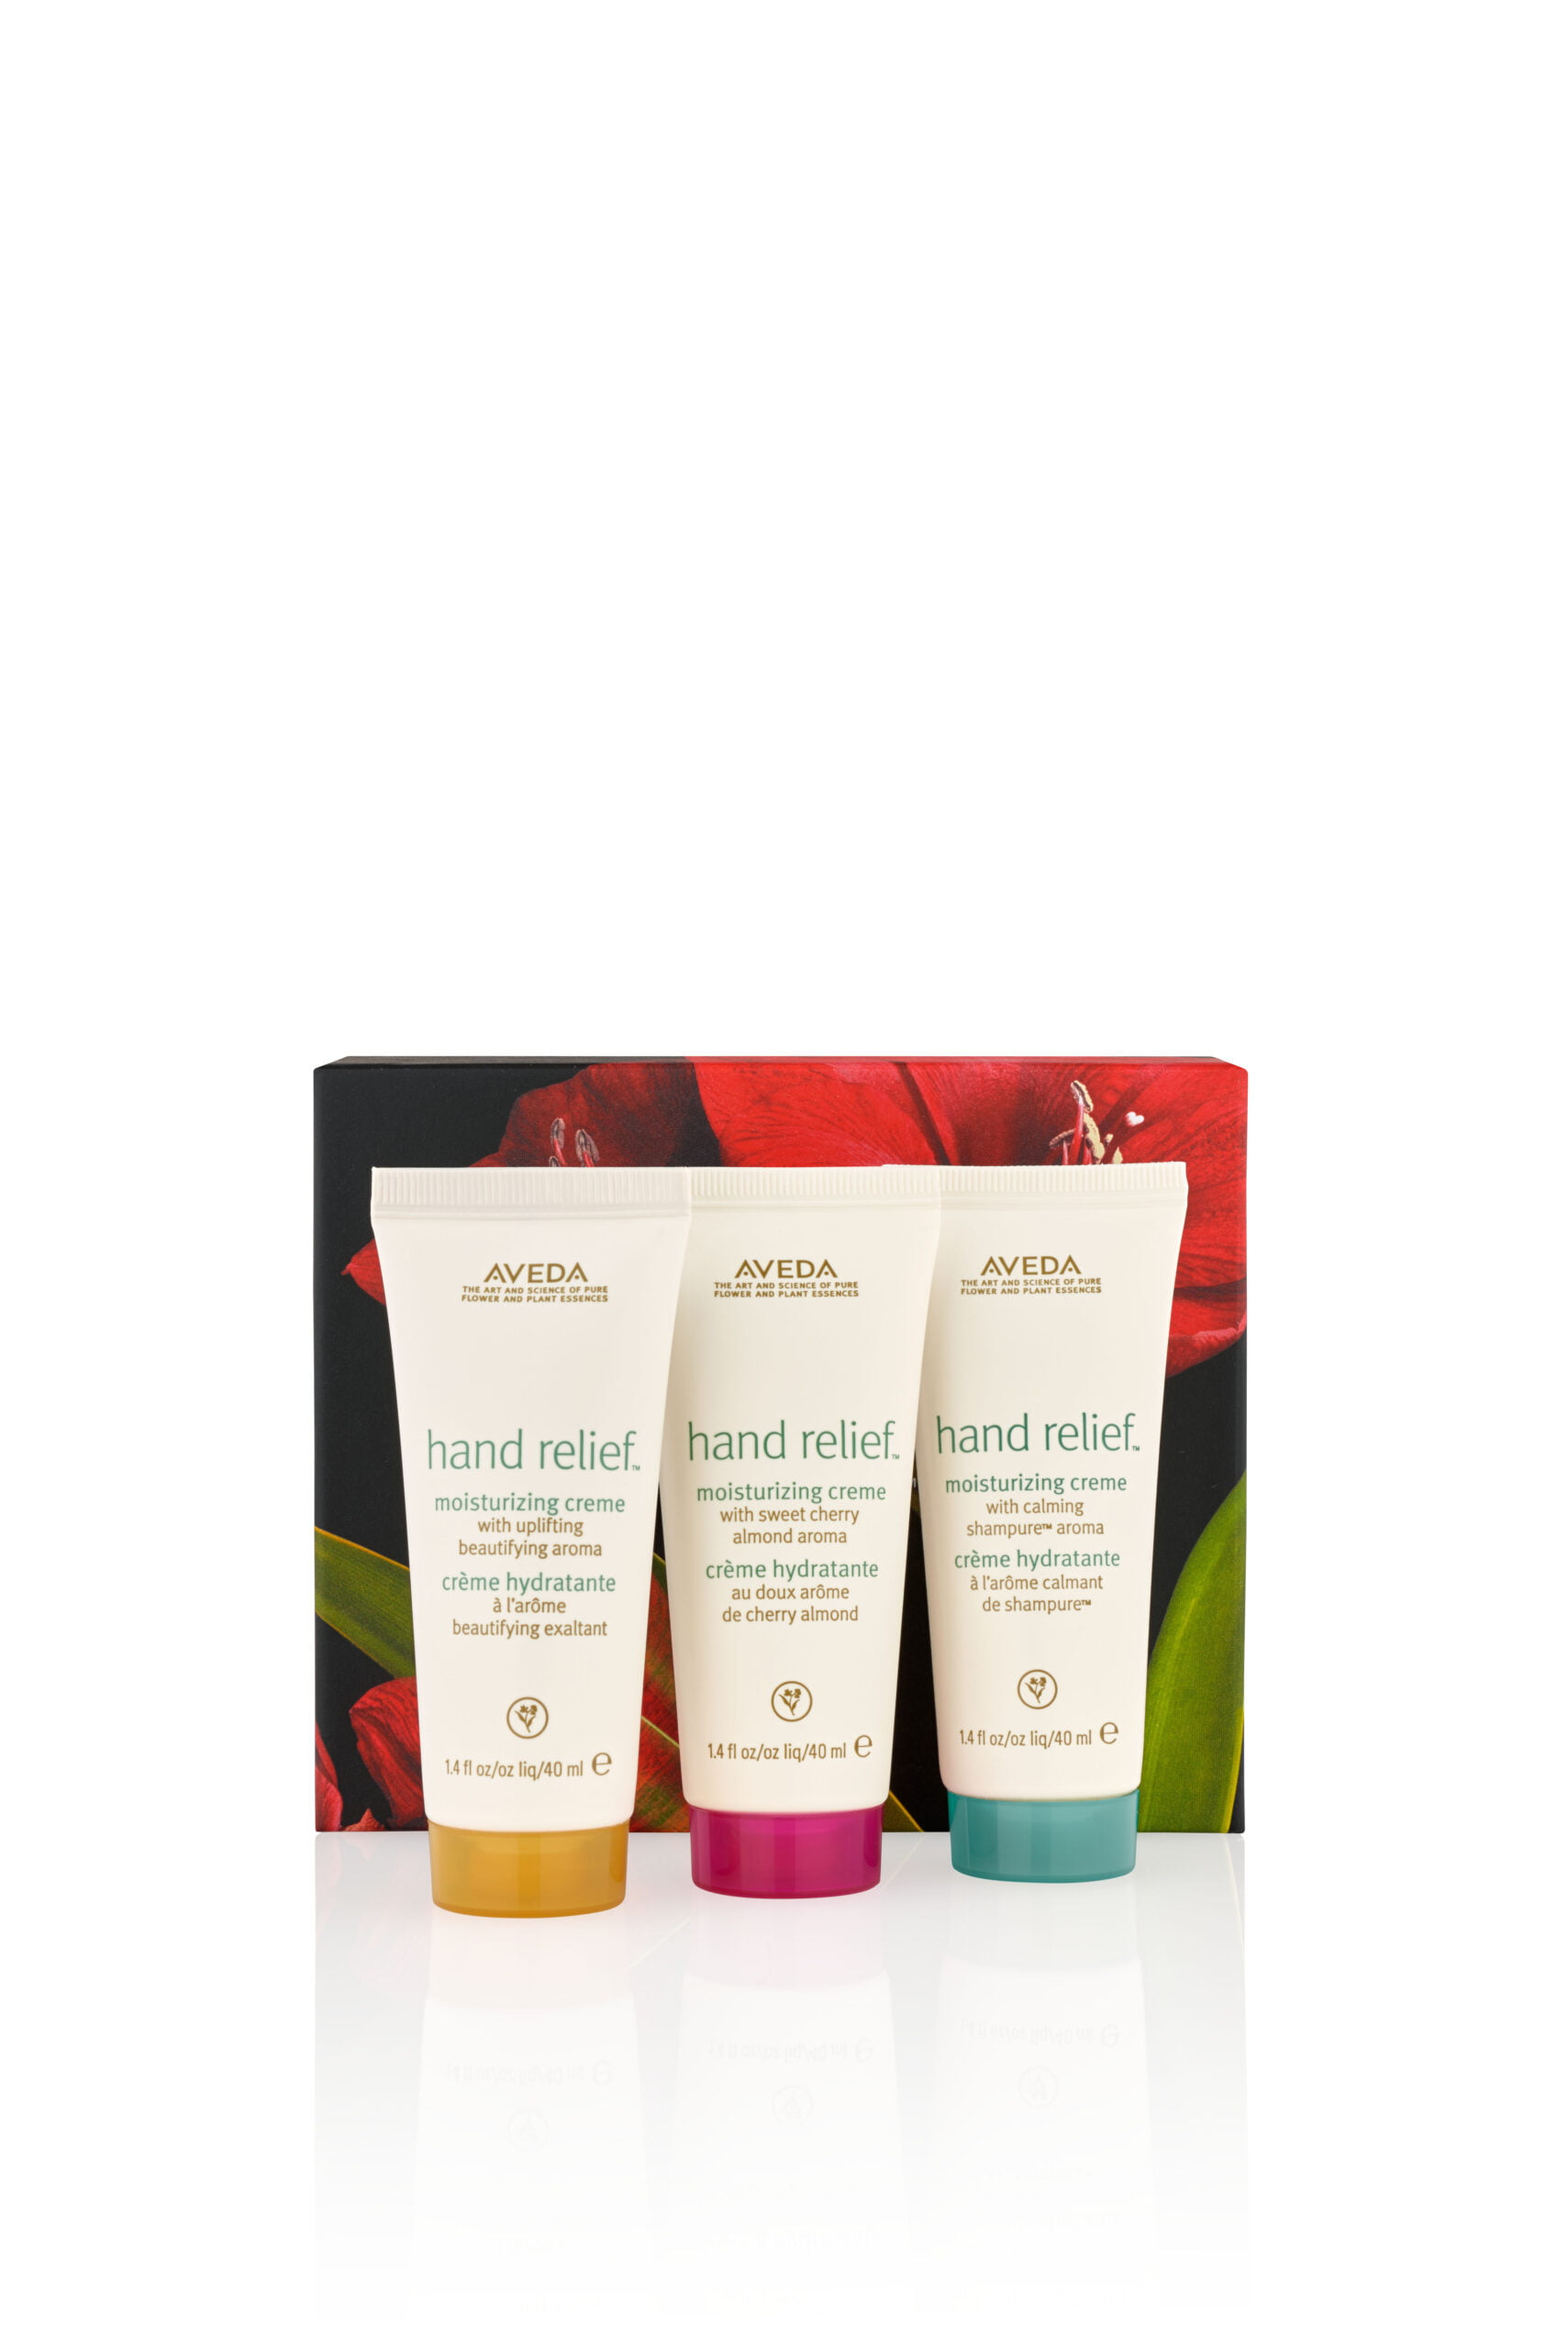 Hand Relief Trio Gift set now at Zucci